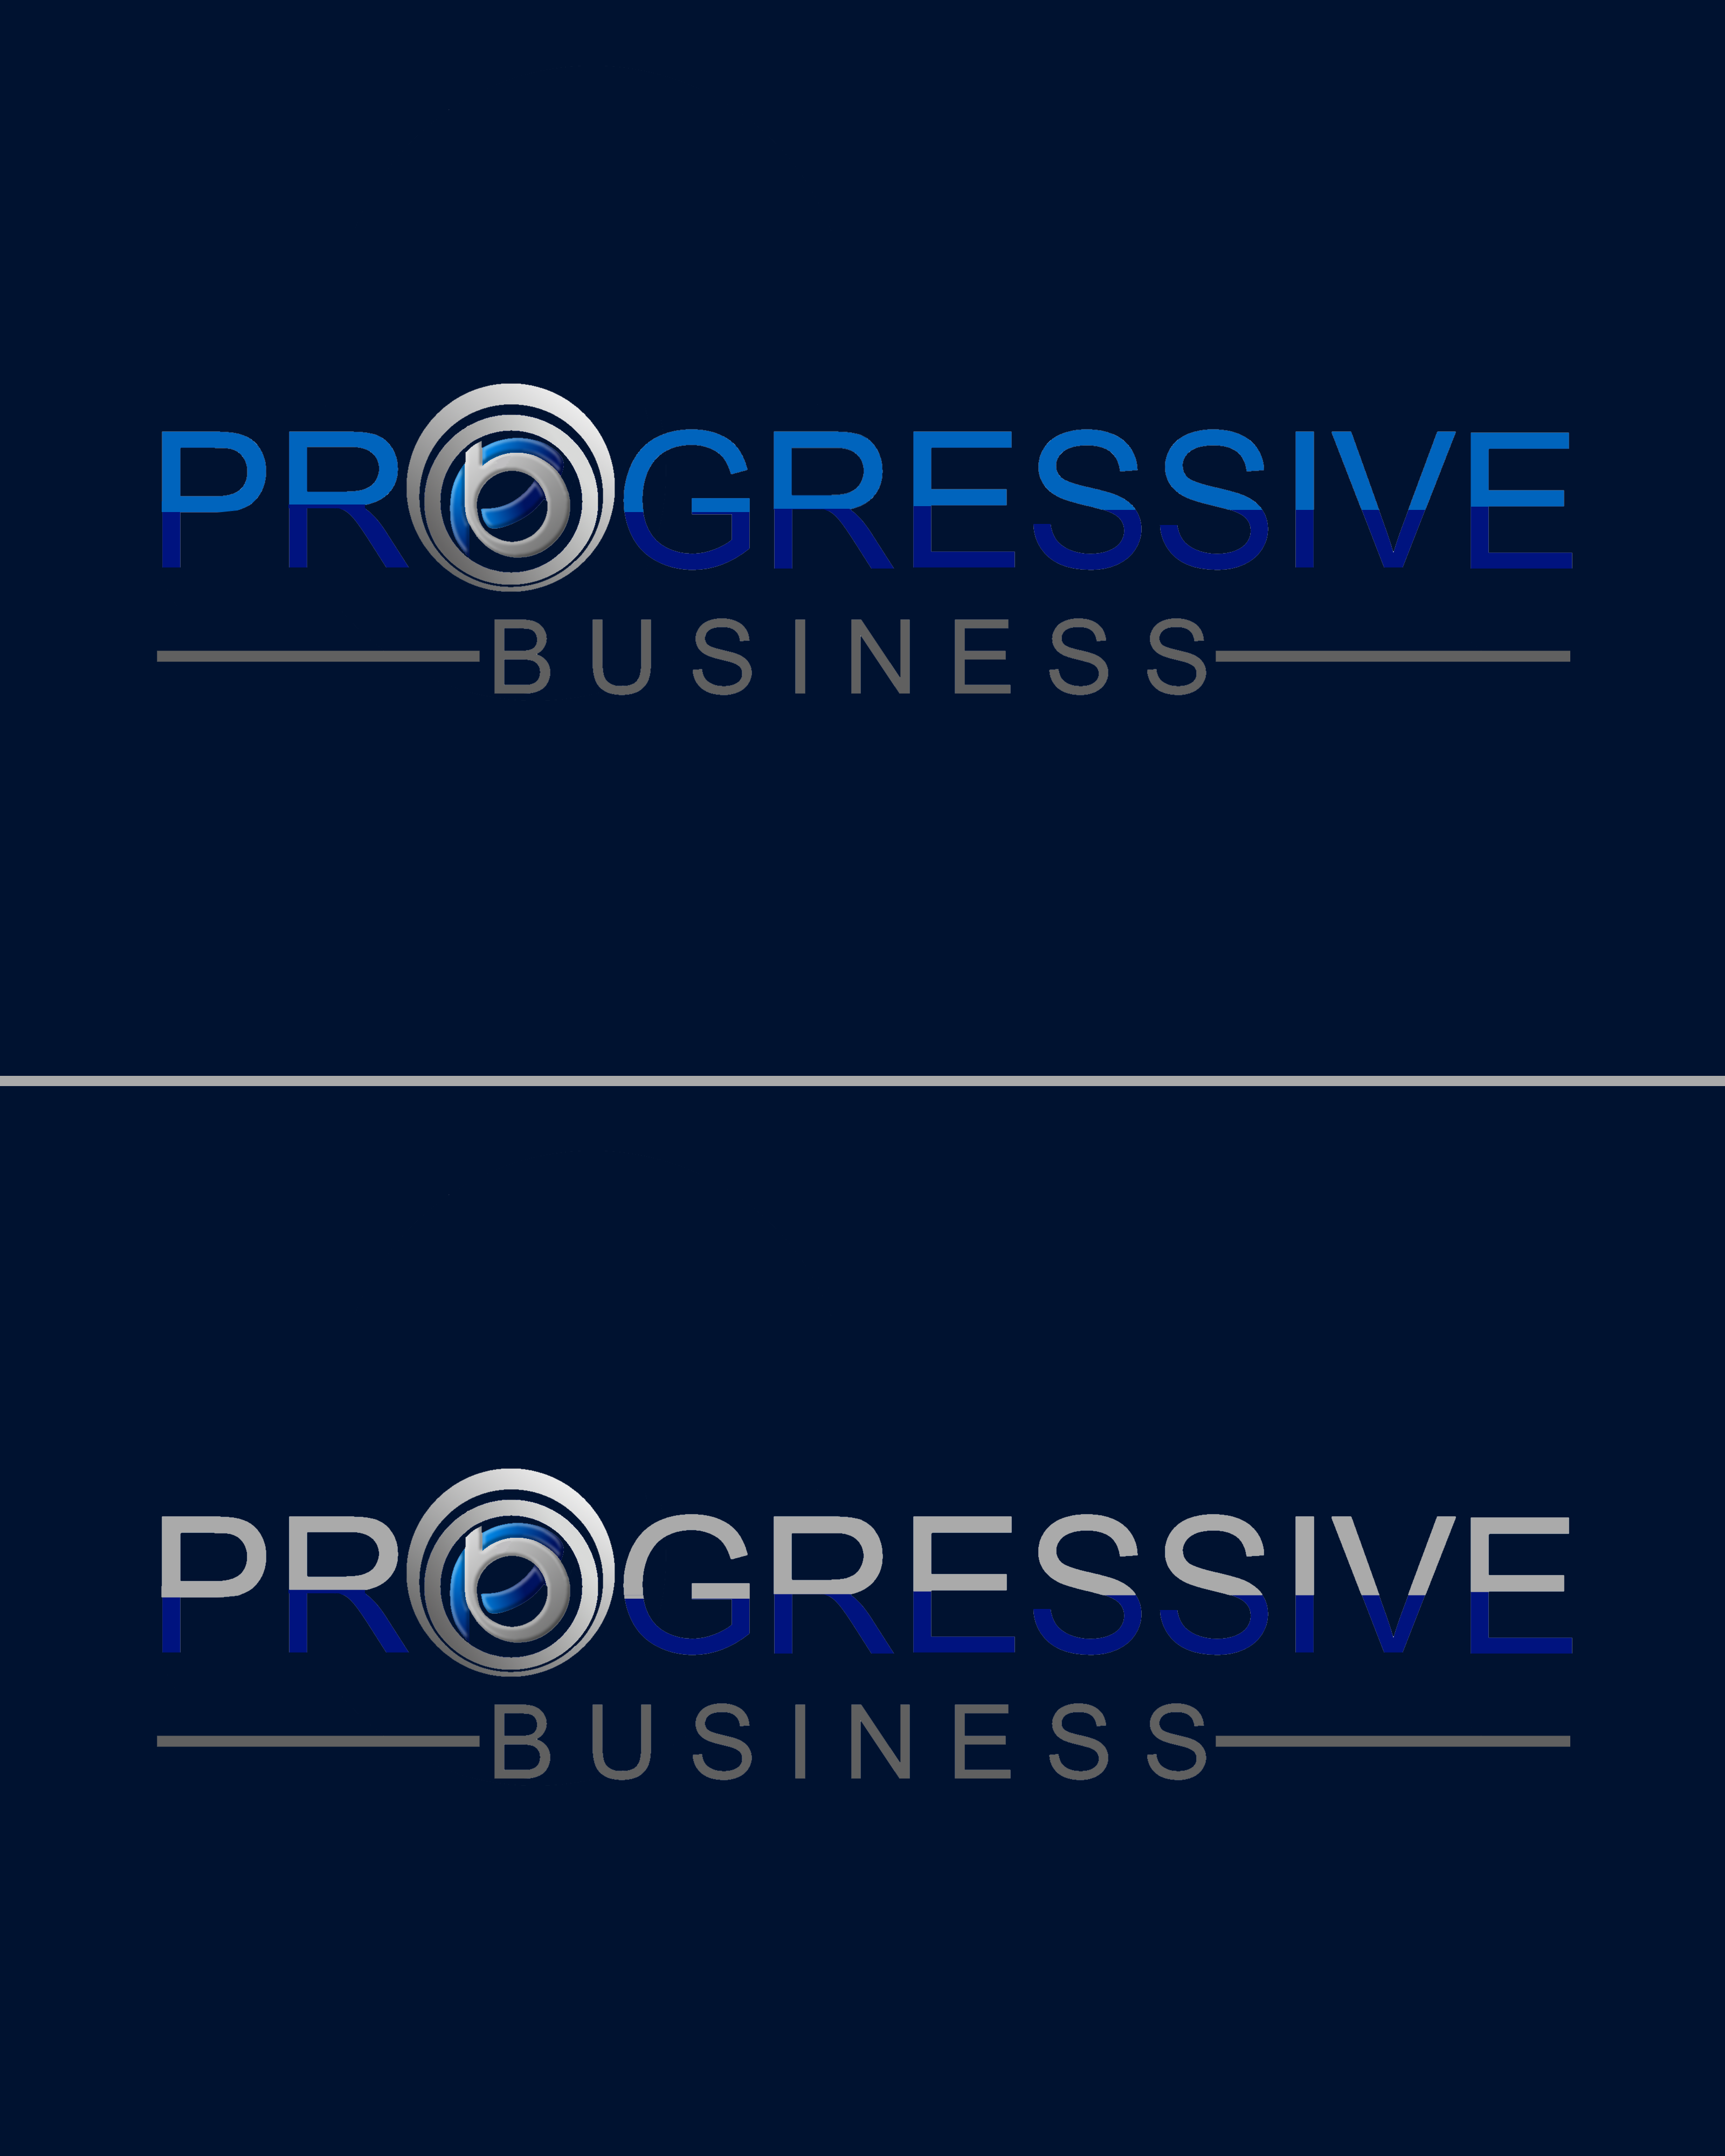 Logo Design by Roberto Bassi - Entry No. 133 in the Logo Design Contest Captivating Logo Design for Progressive Business.